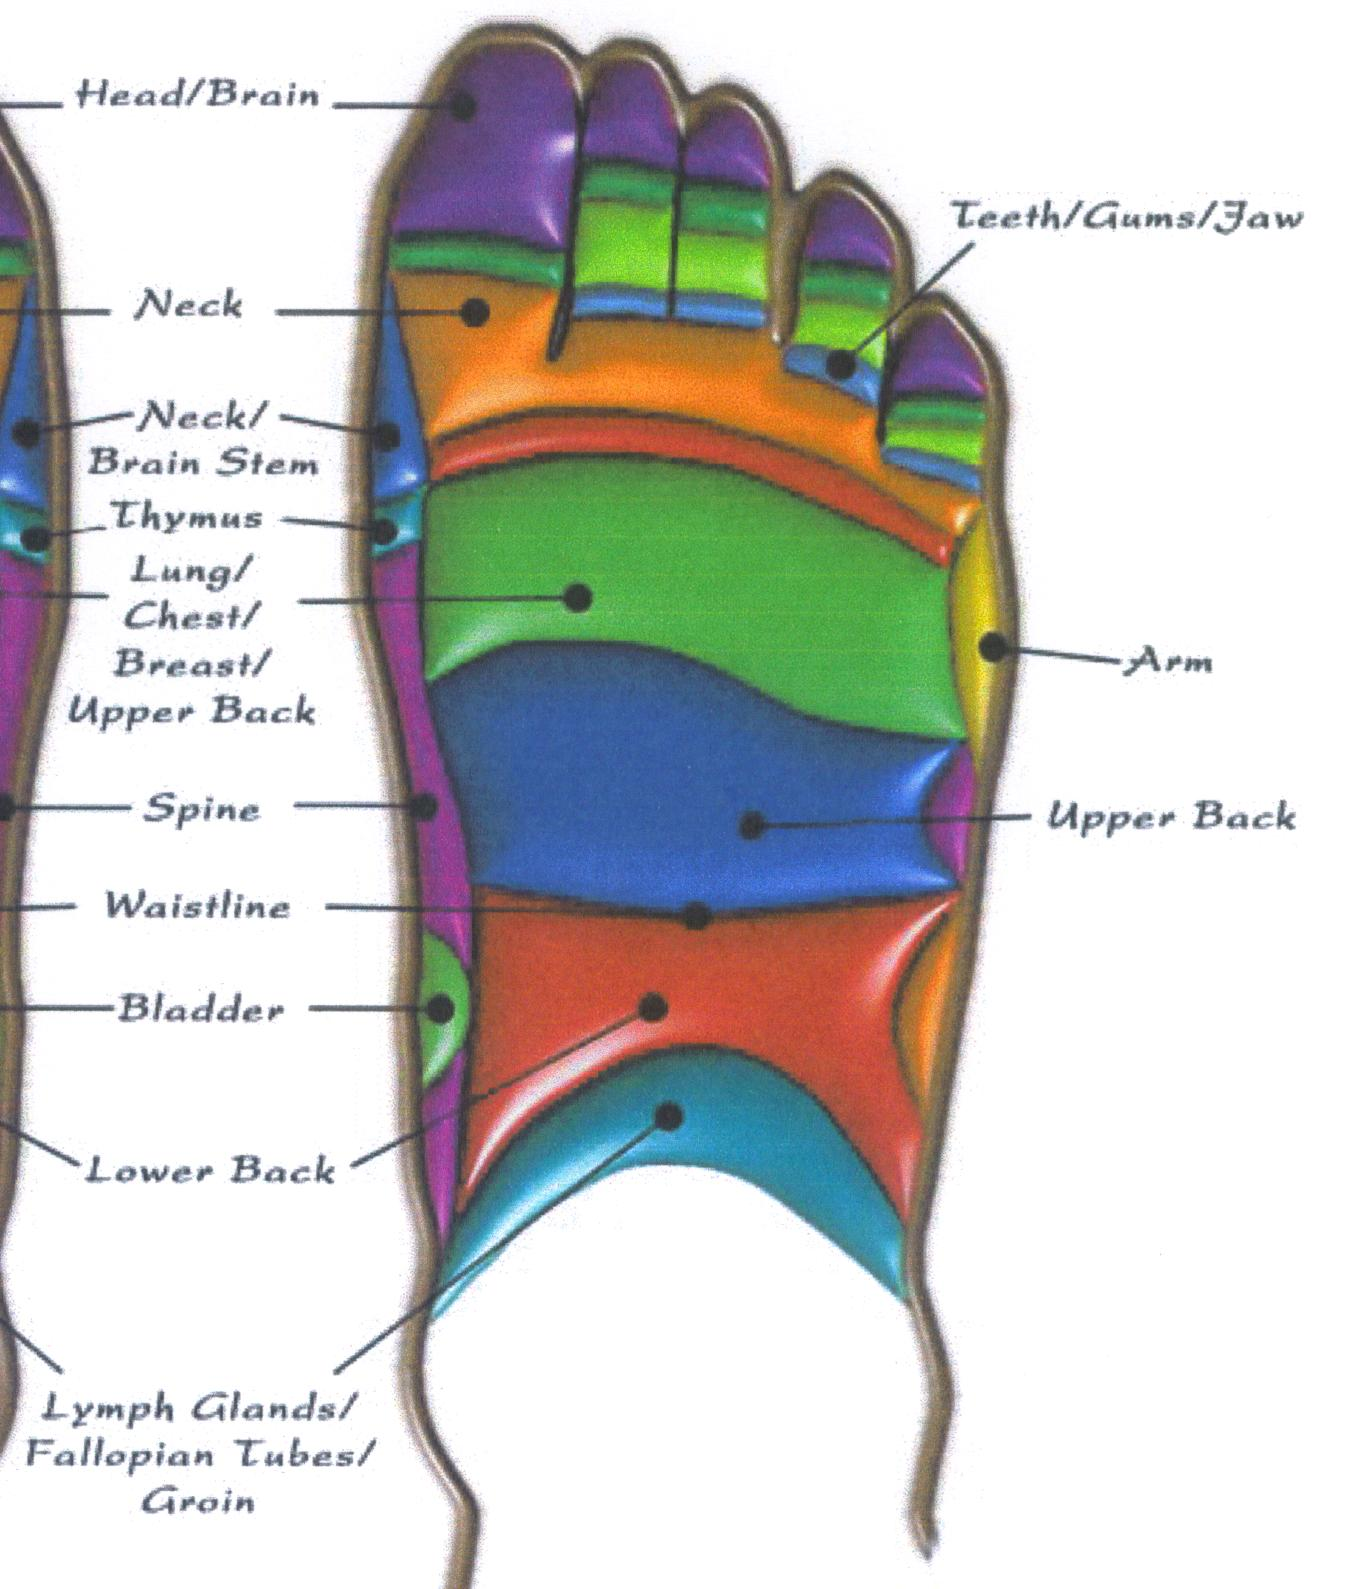 top of foot pain diagram and there labeled microscope parts for what reflexology free engine image